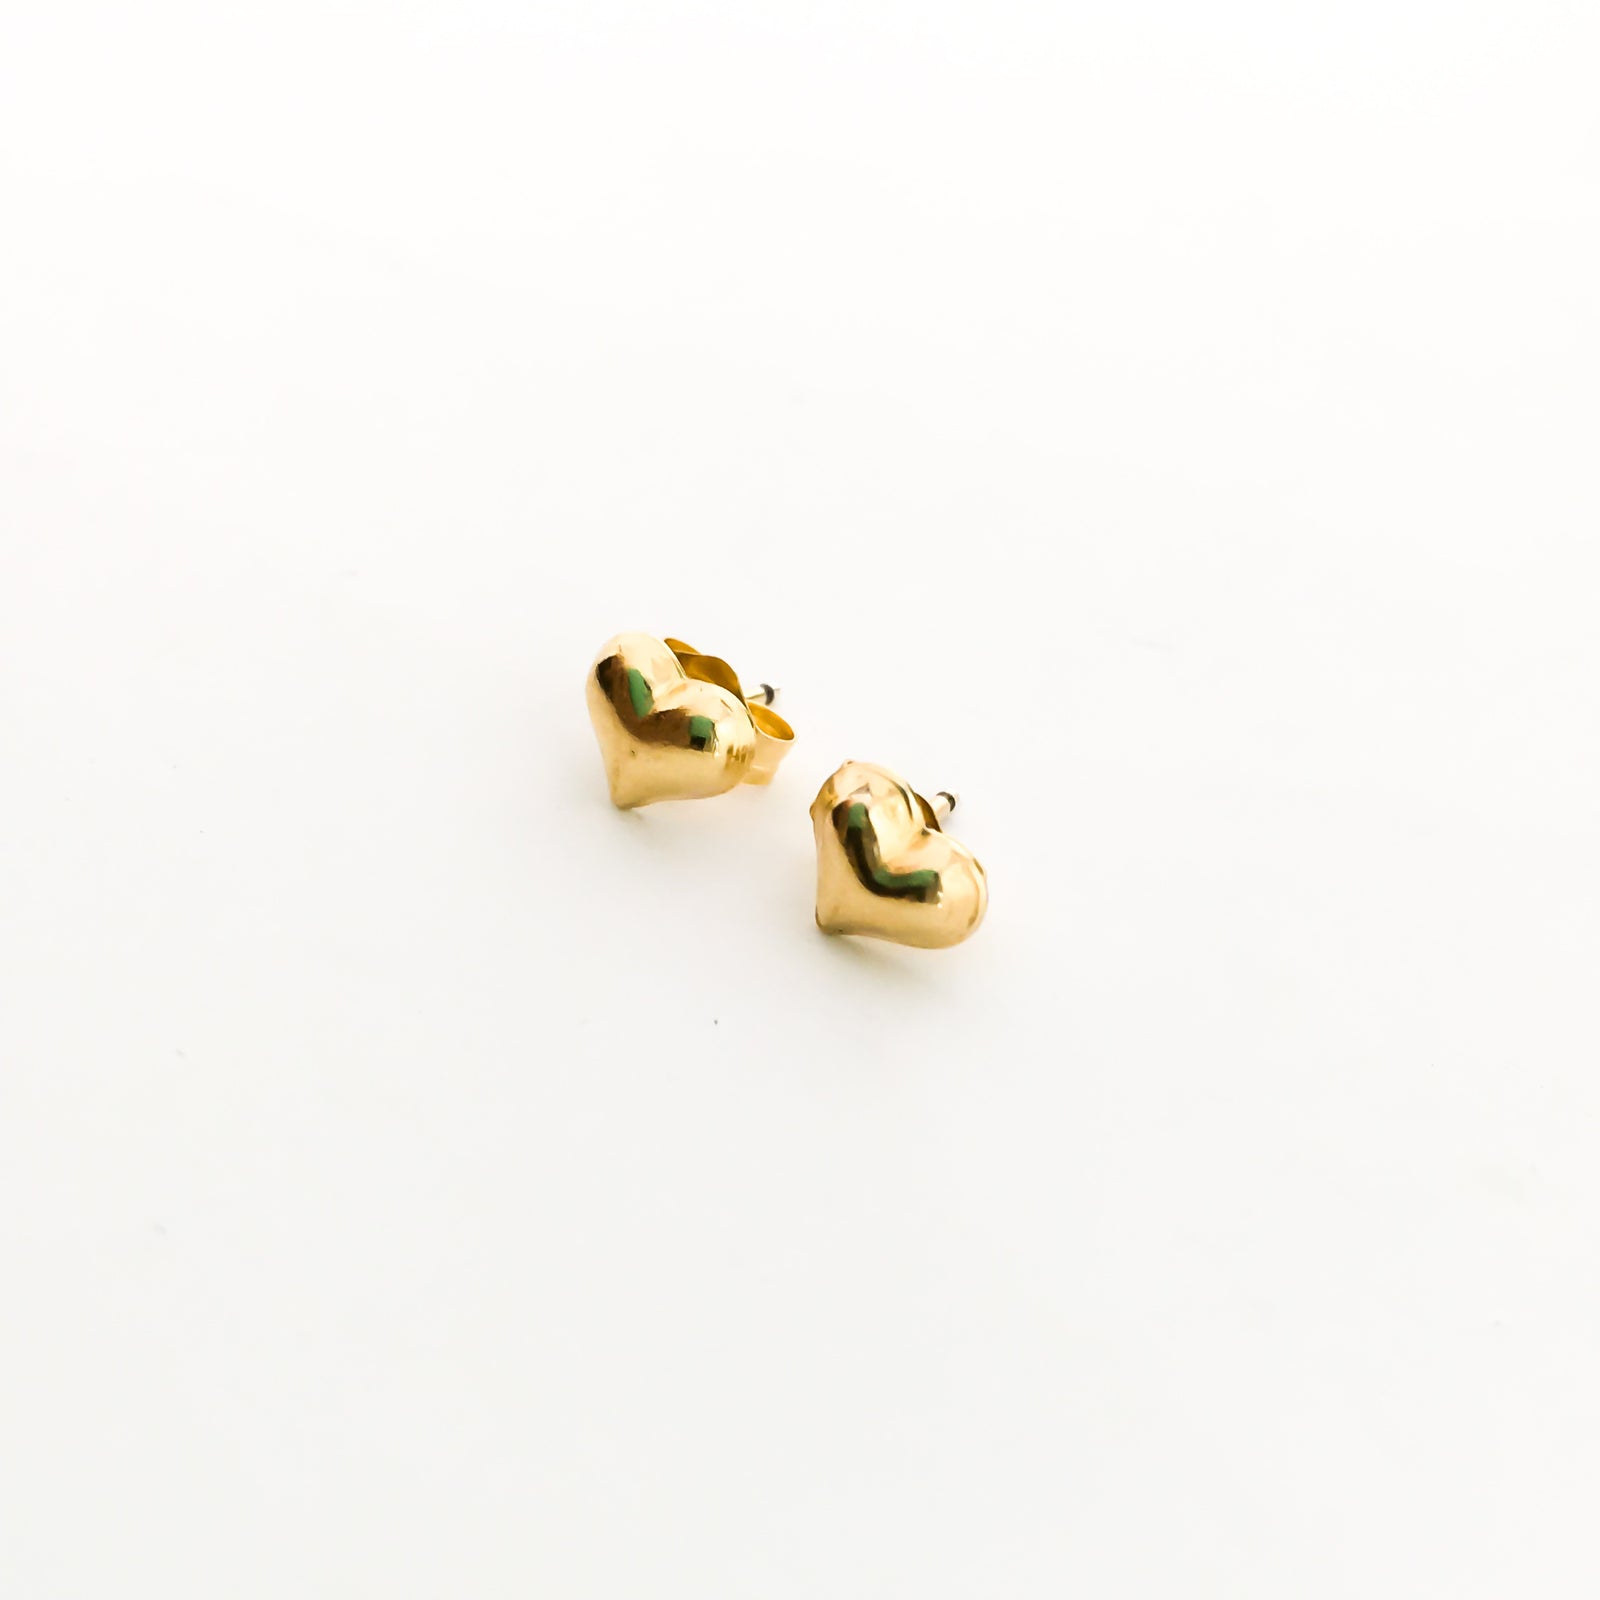 HEART STUD EARRINGS | 14K GOLD-FILLED